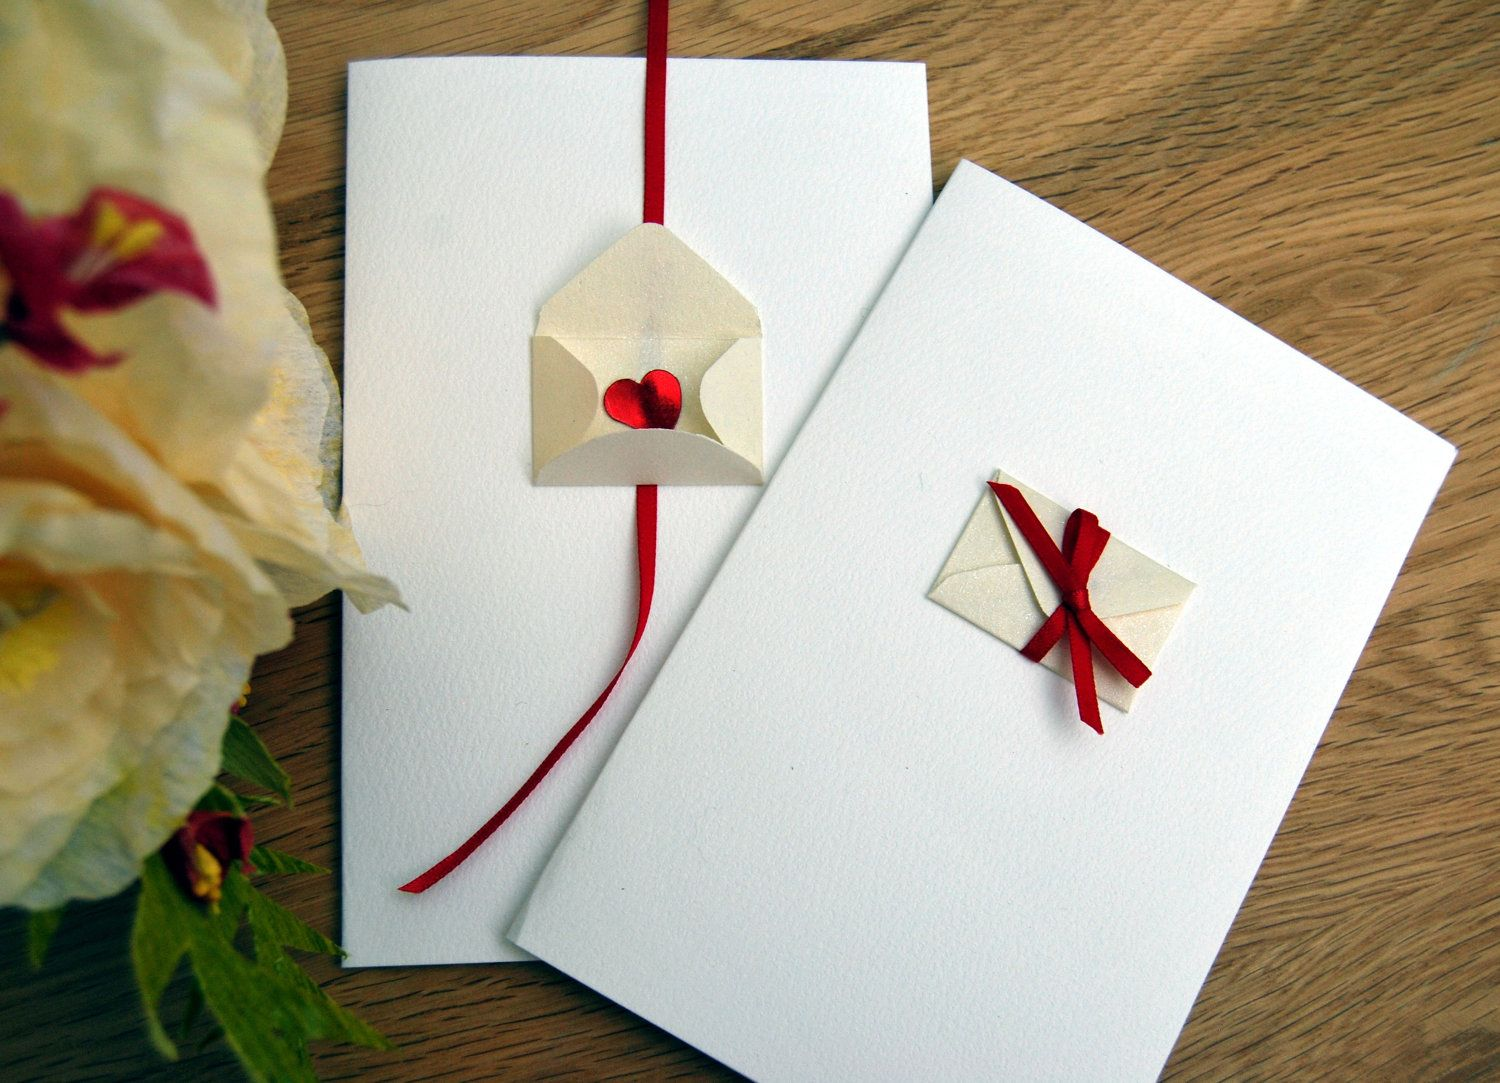 This card has a small pearlised ivory envelope that can be opened to reveal a sequin heart. This is the perfect card to use as a valentines card.